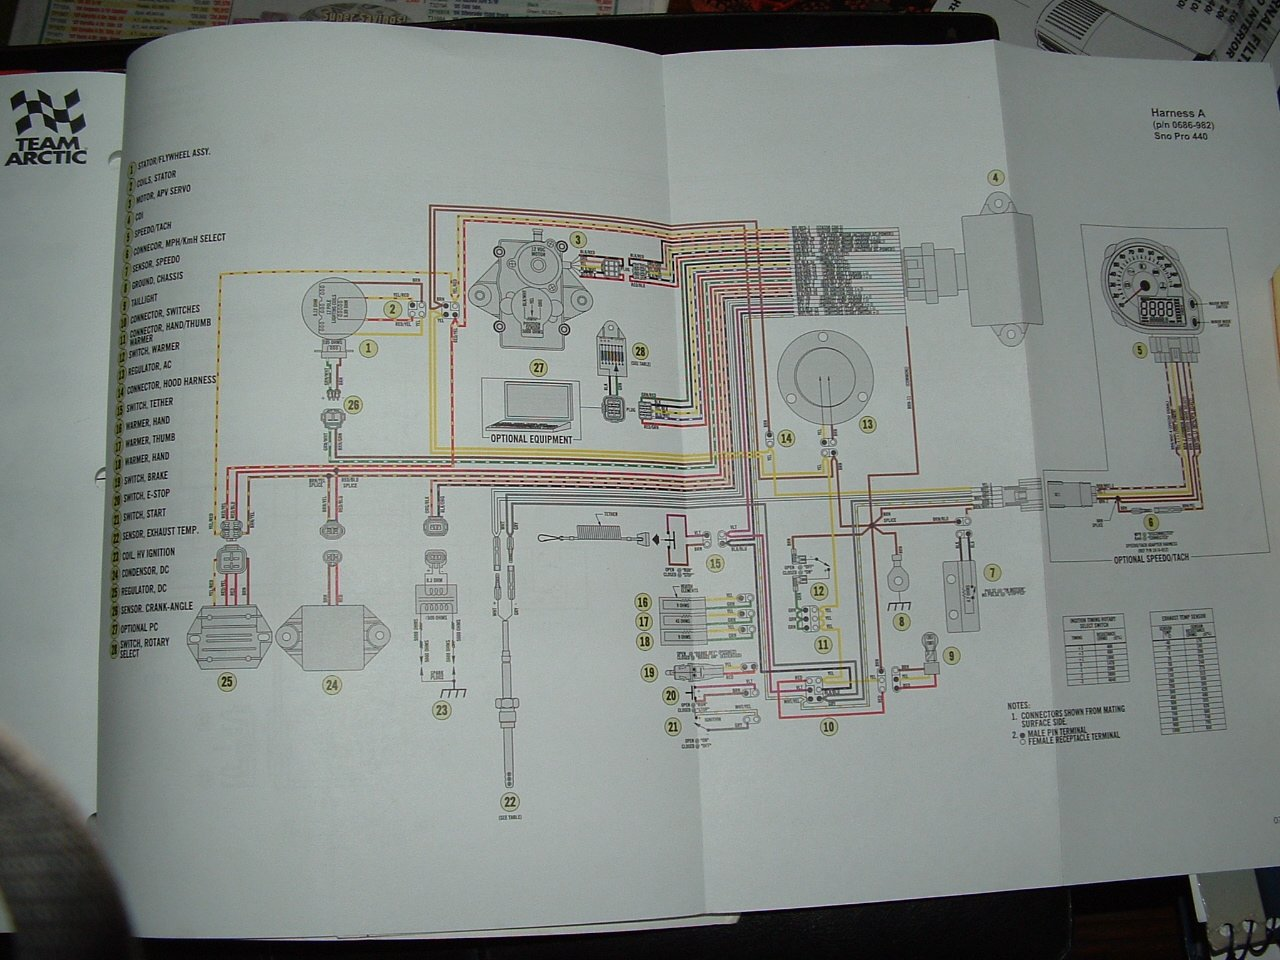 2010 arctic cat atv wiring diagram